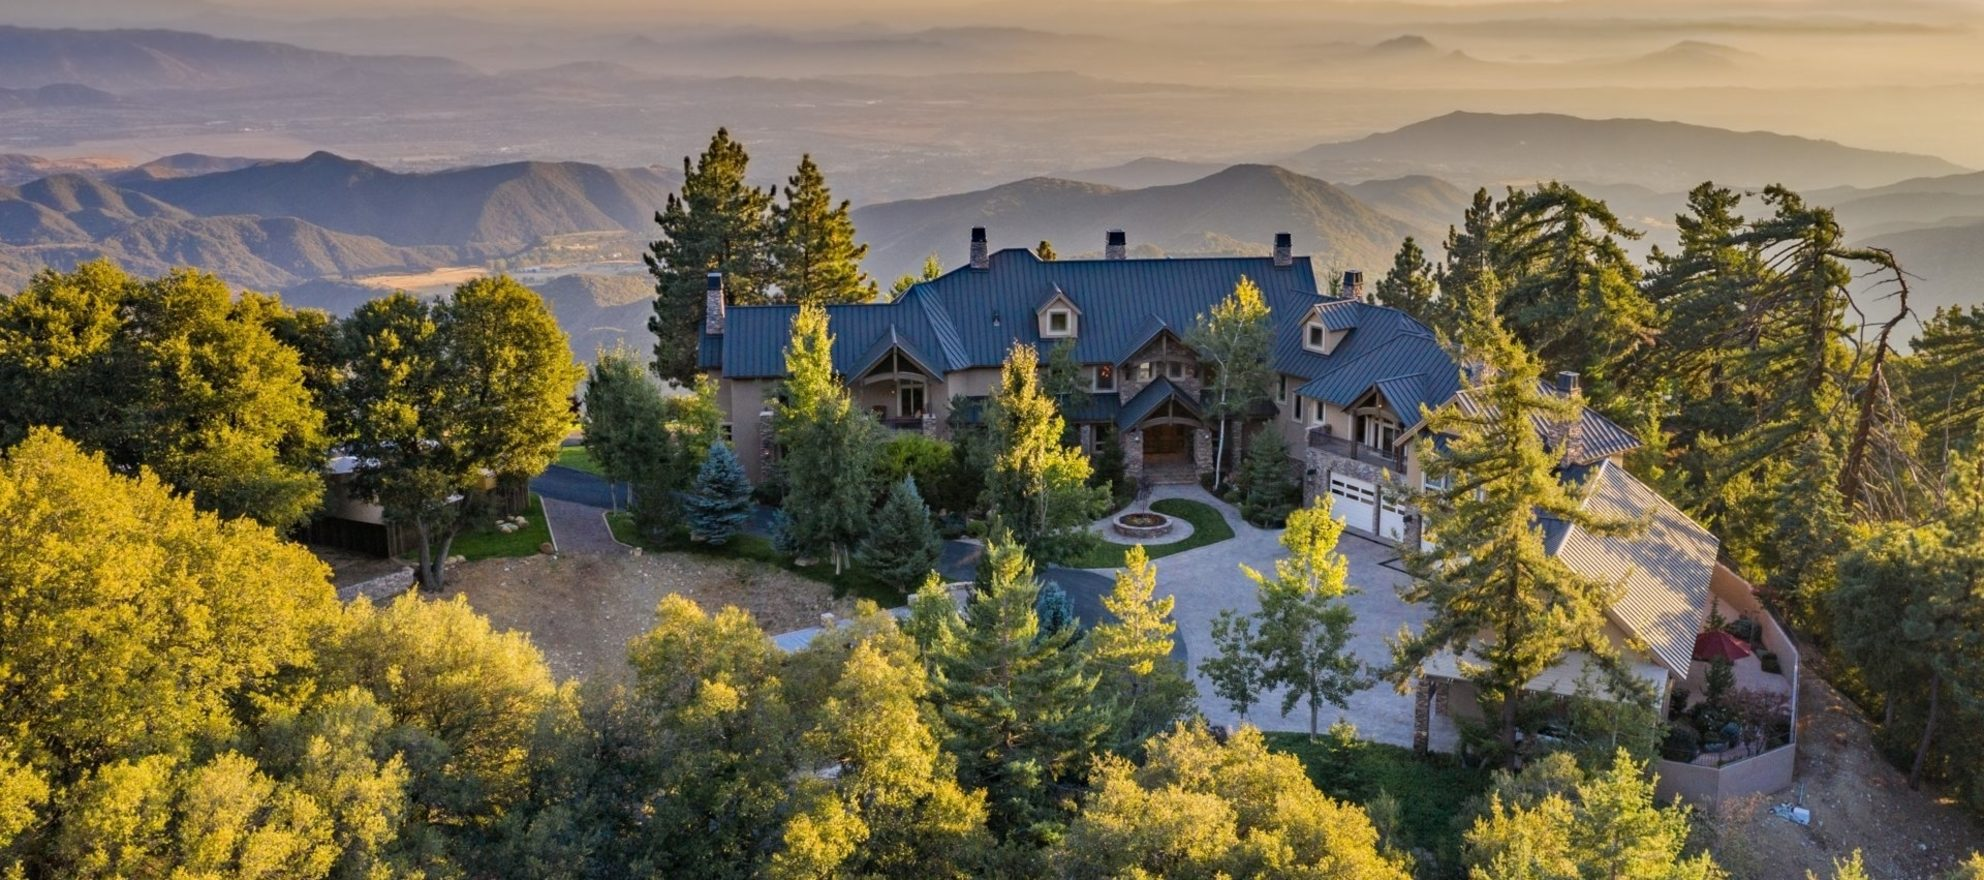 A Mega Millions lottery winner is selling his estate for $26M